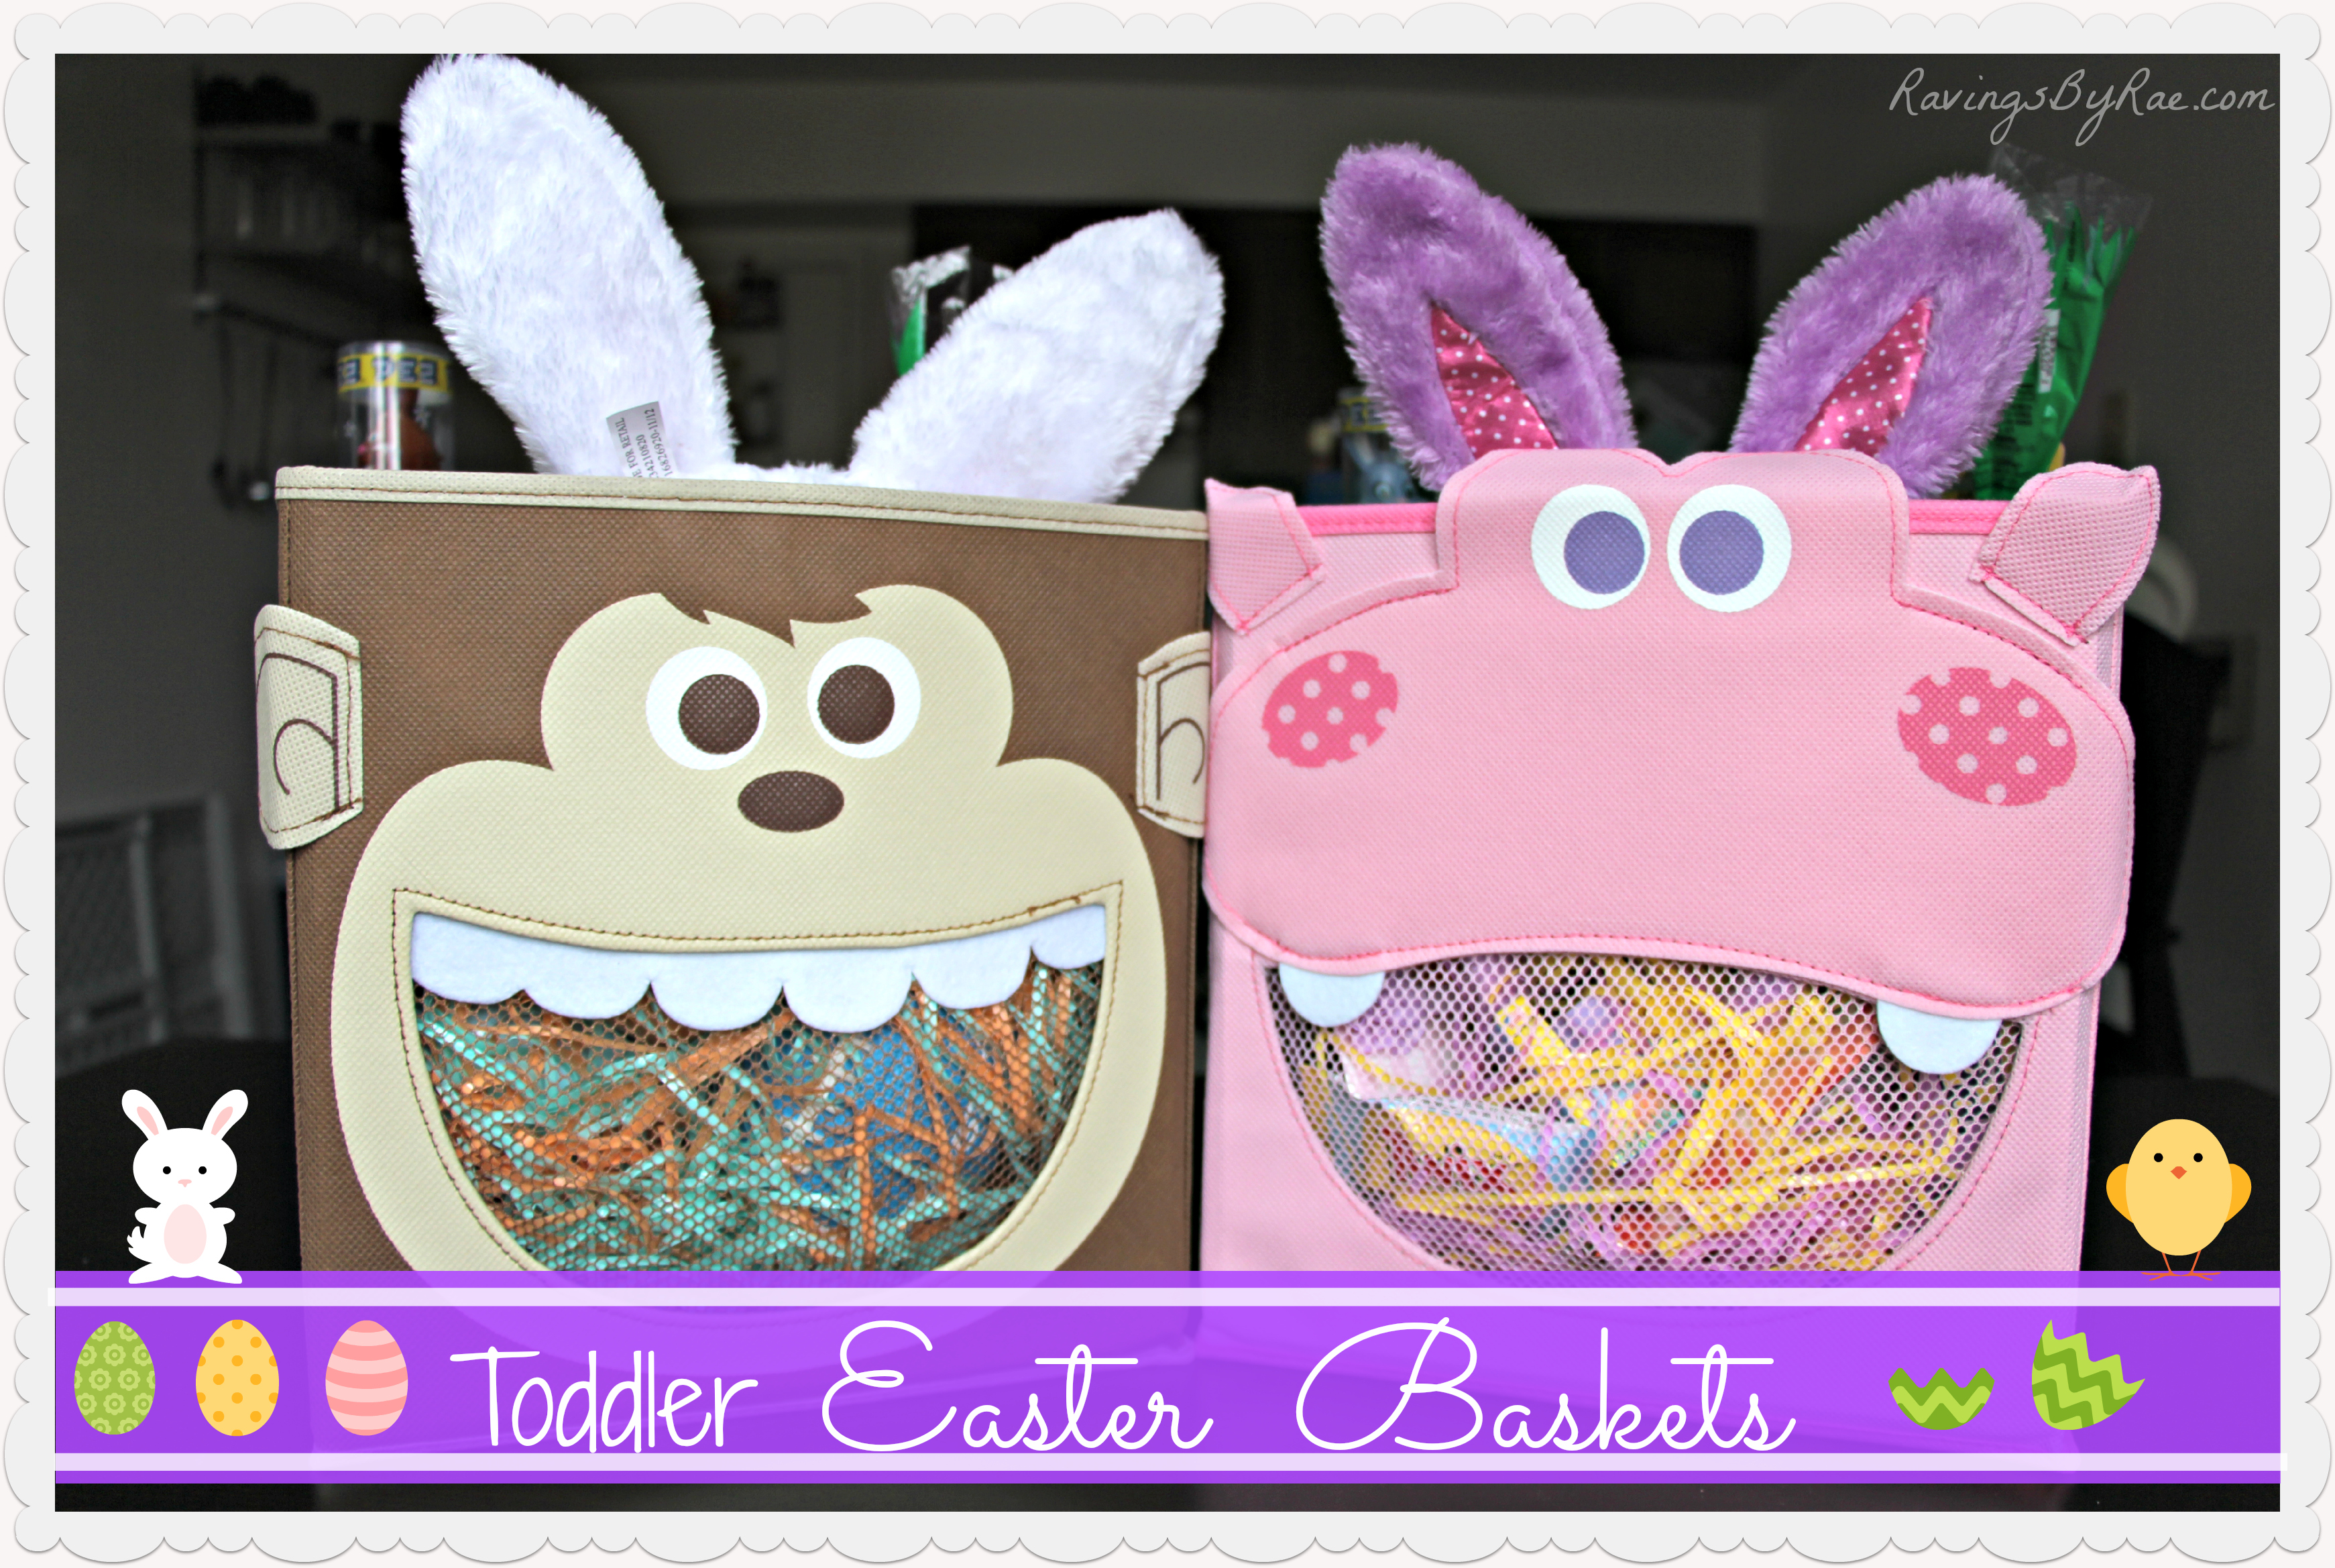 Toddler easter baskets non traditional sarah rae vargas toddler easter baskets 2 negle Gallery